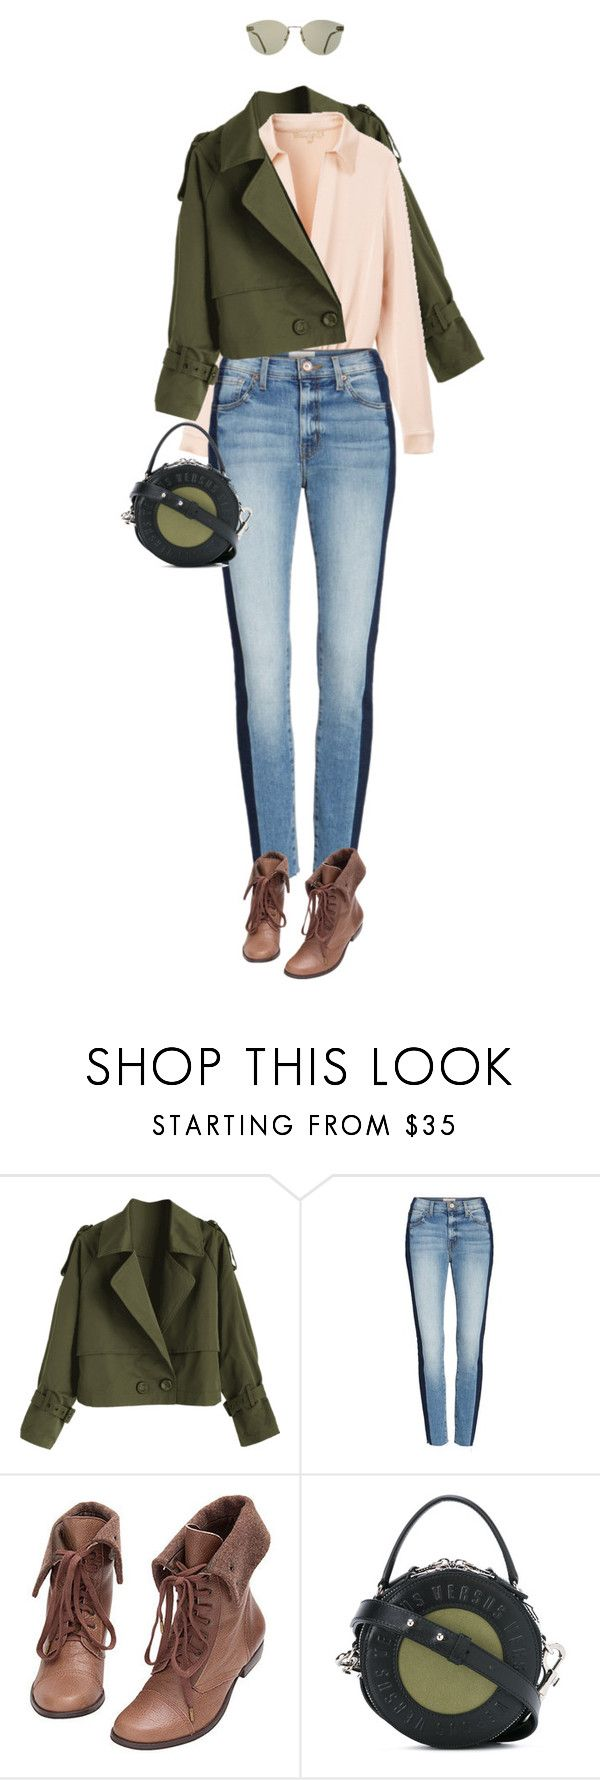 """eva1449"" by evava-c on Polyvore featuring Michael Kors, Band of Gypsies and Versus"